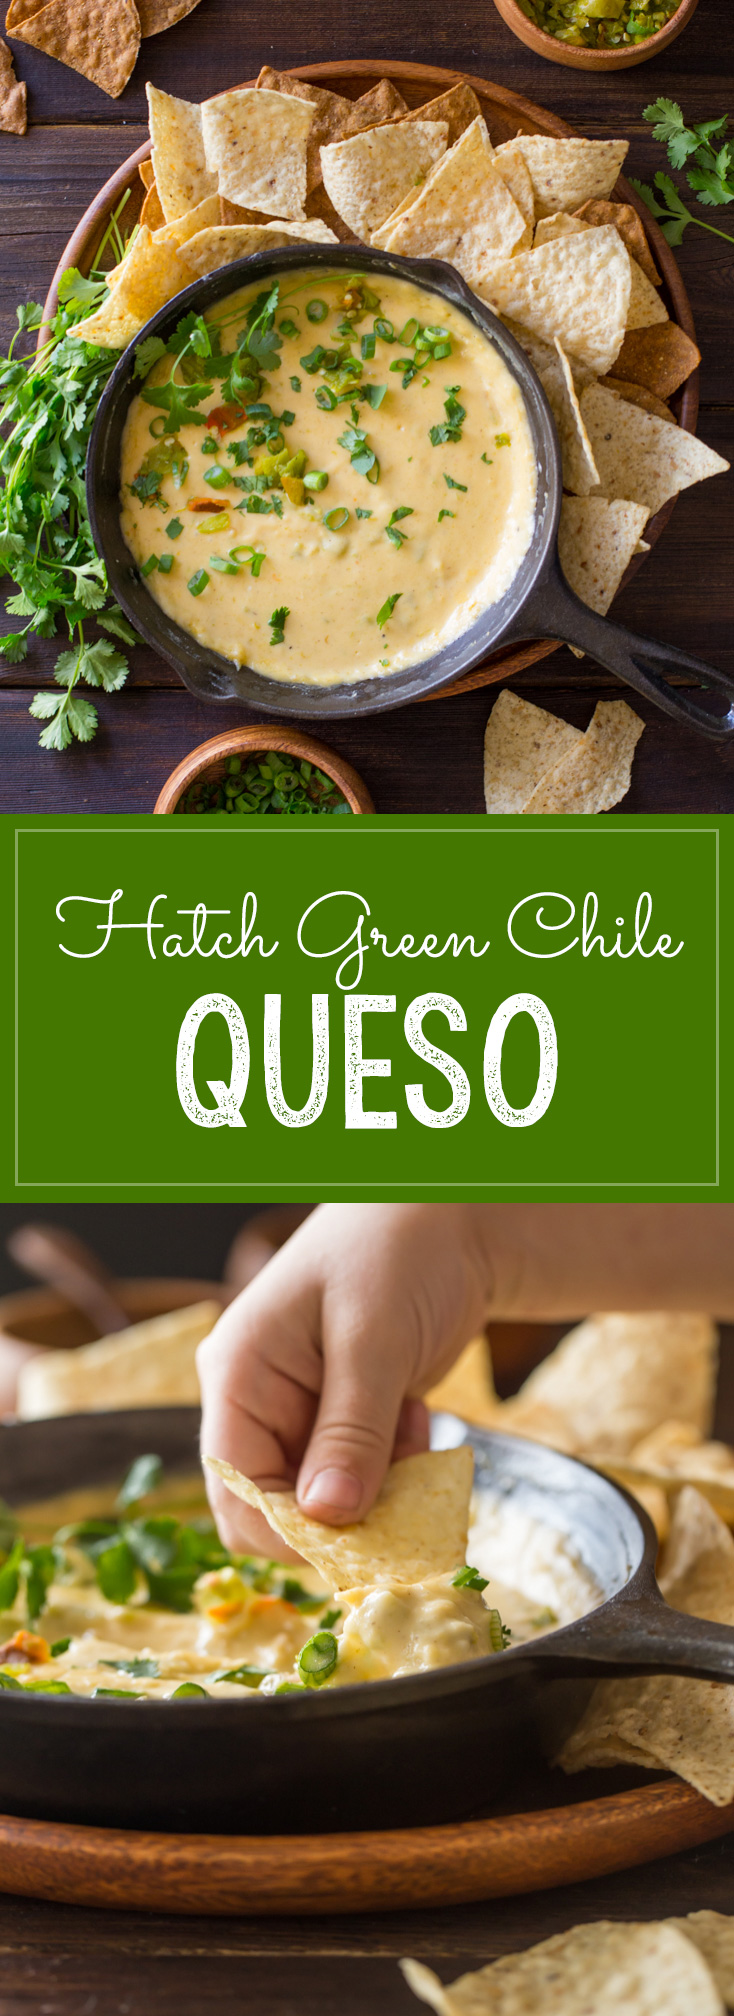 Hatch Green Chile Queso - Even without boxed cheese, this dip comes out smooth and creamy and is super quick and easy to make!